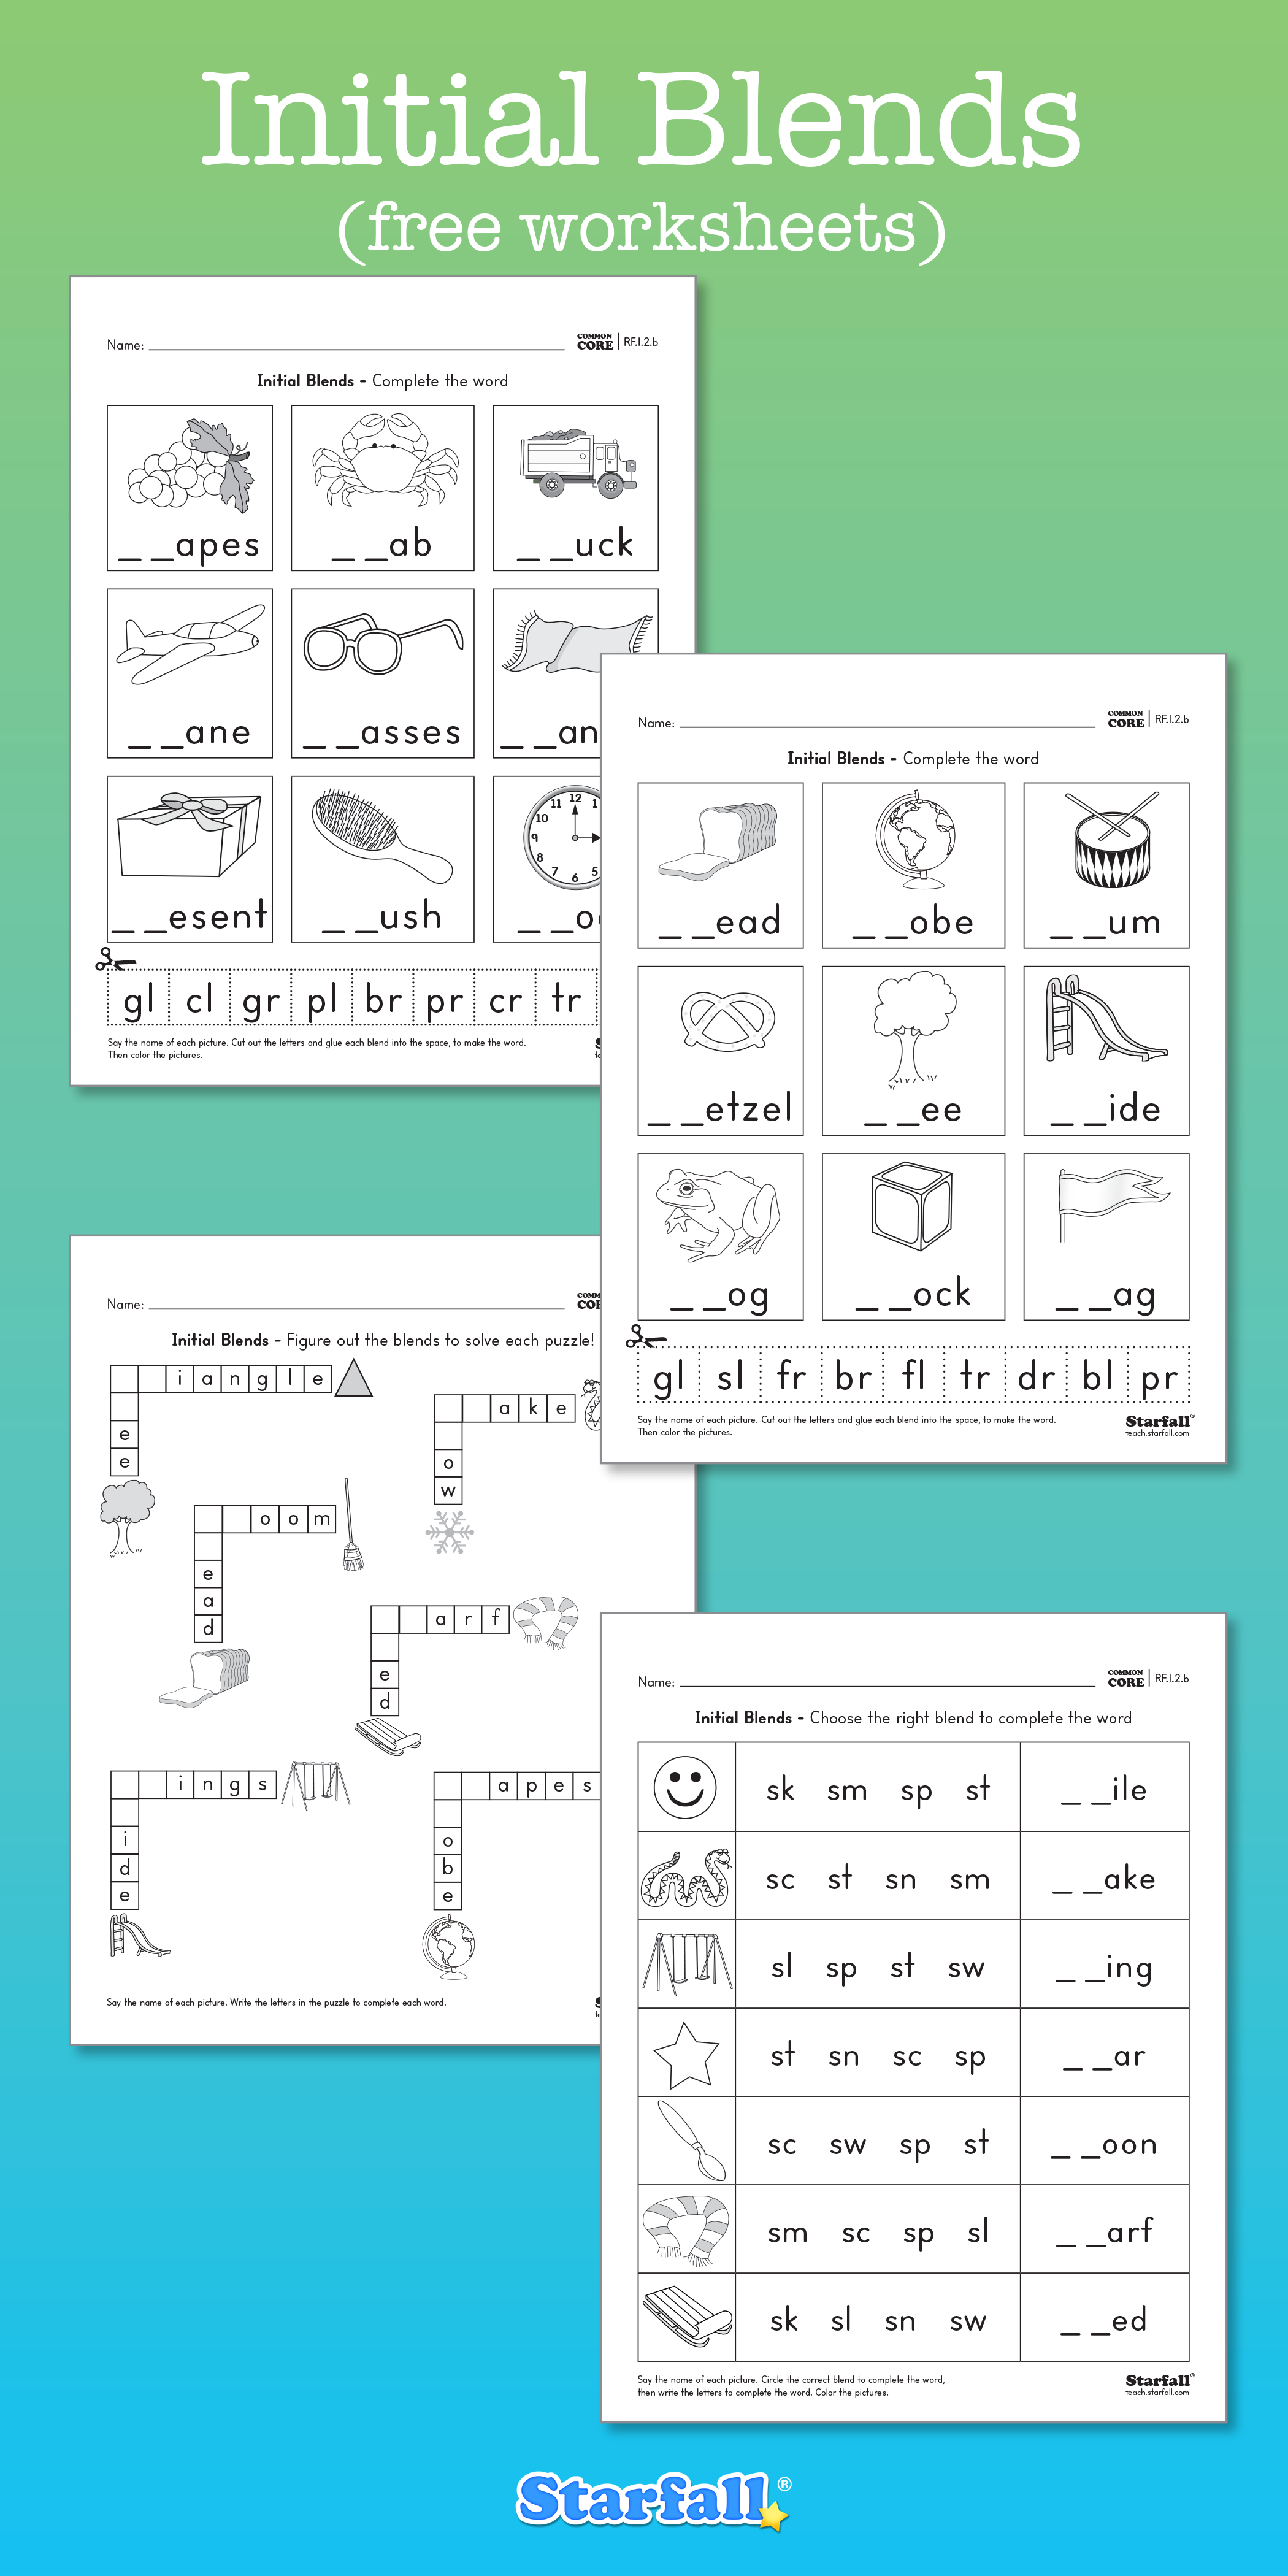 Want To Give Your Child Some Practice With Initial Blends